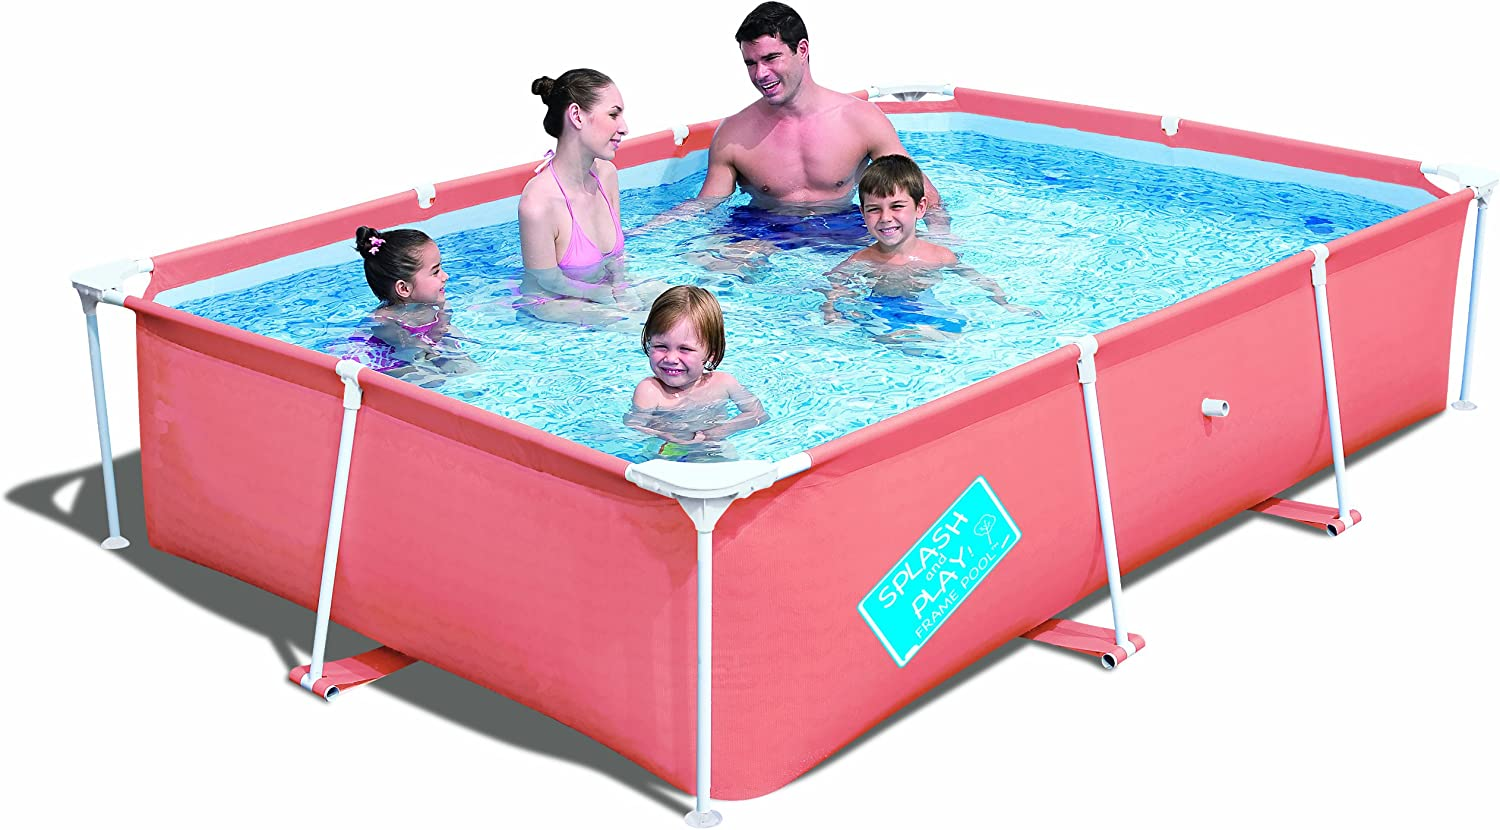 Piscina Rectangular Duro para Niños Splash & Play: Amazon.es ...